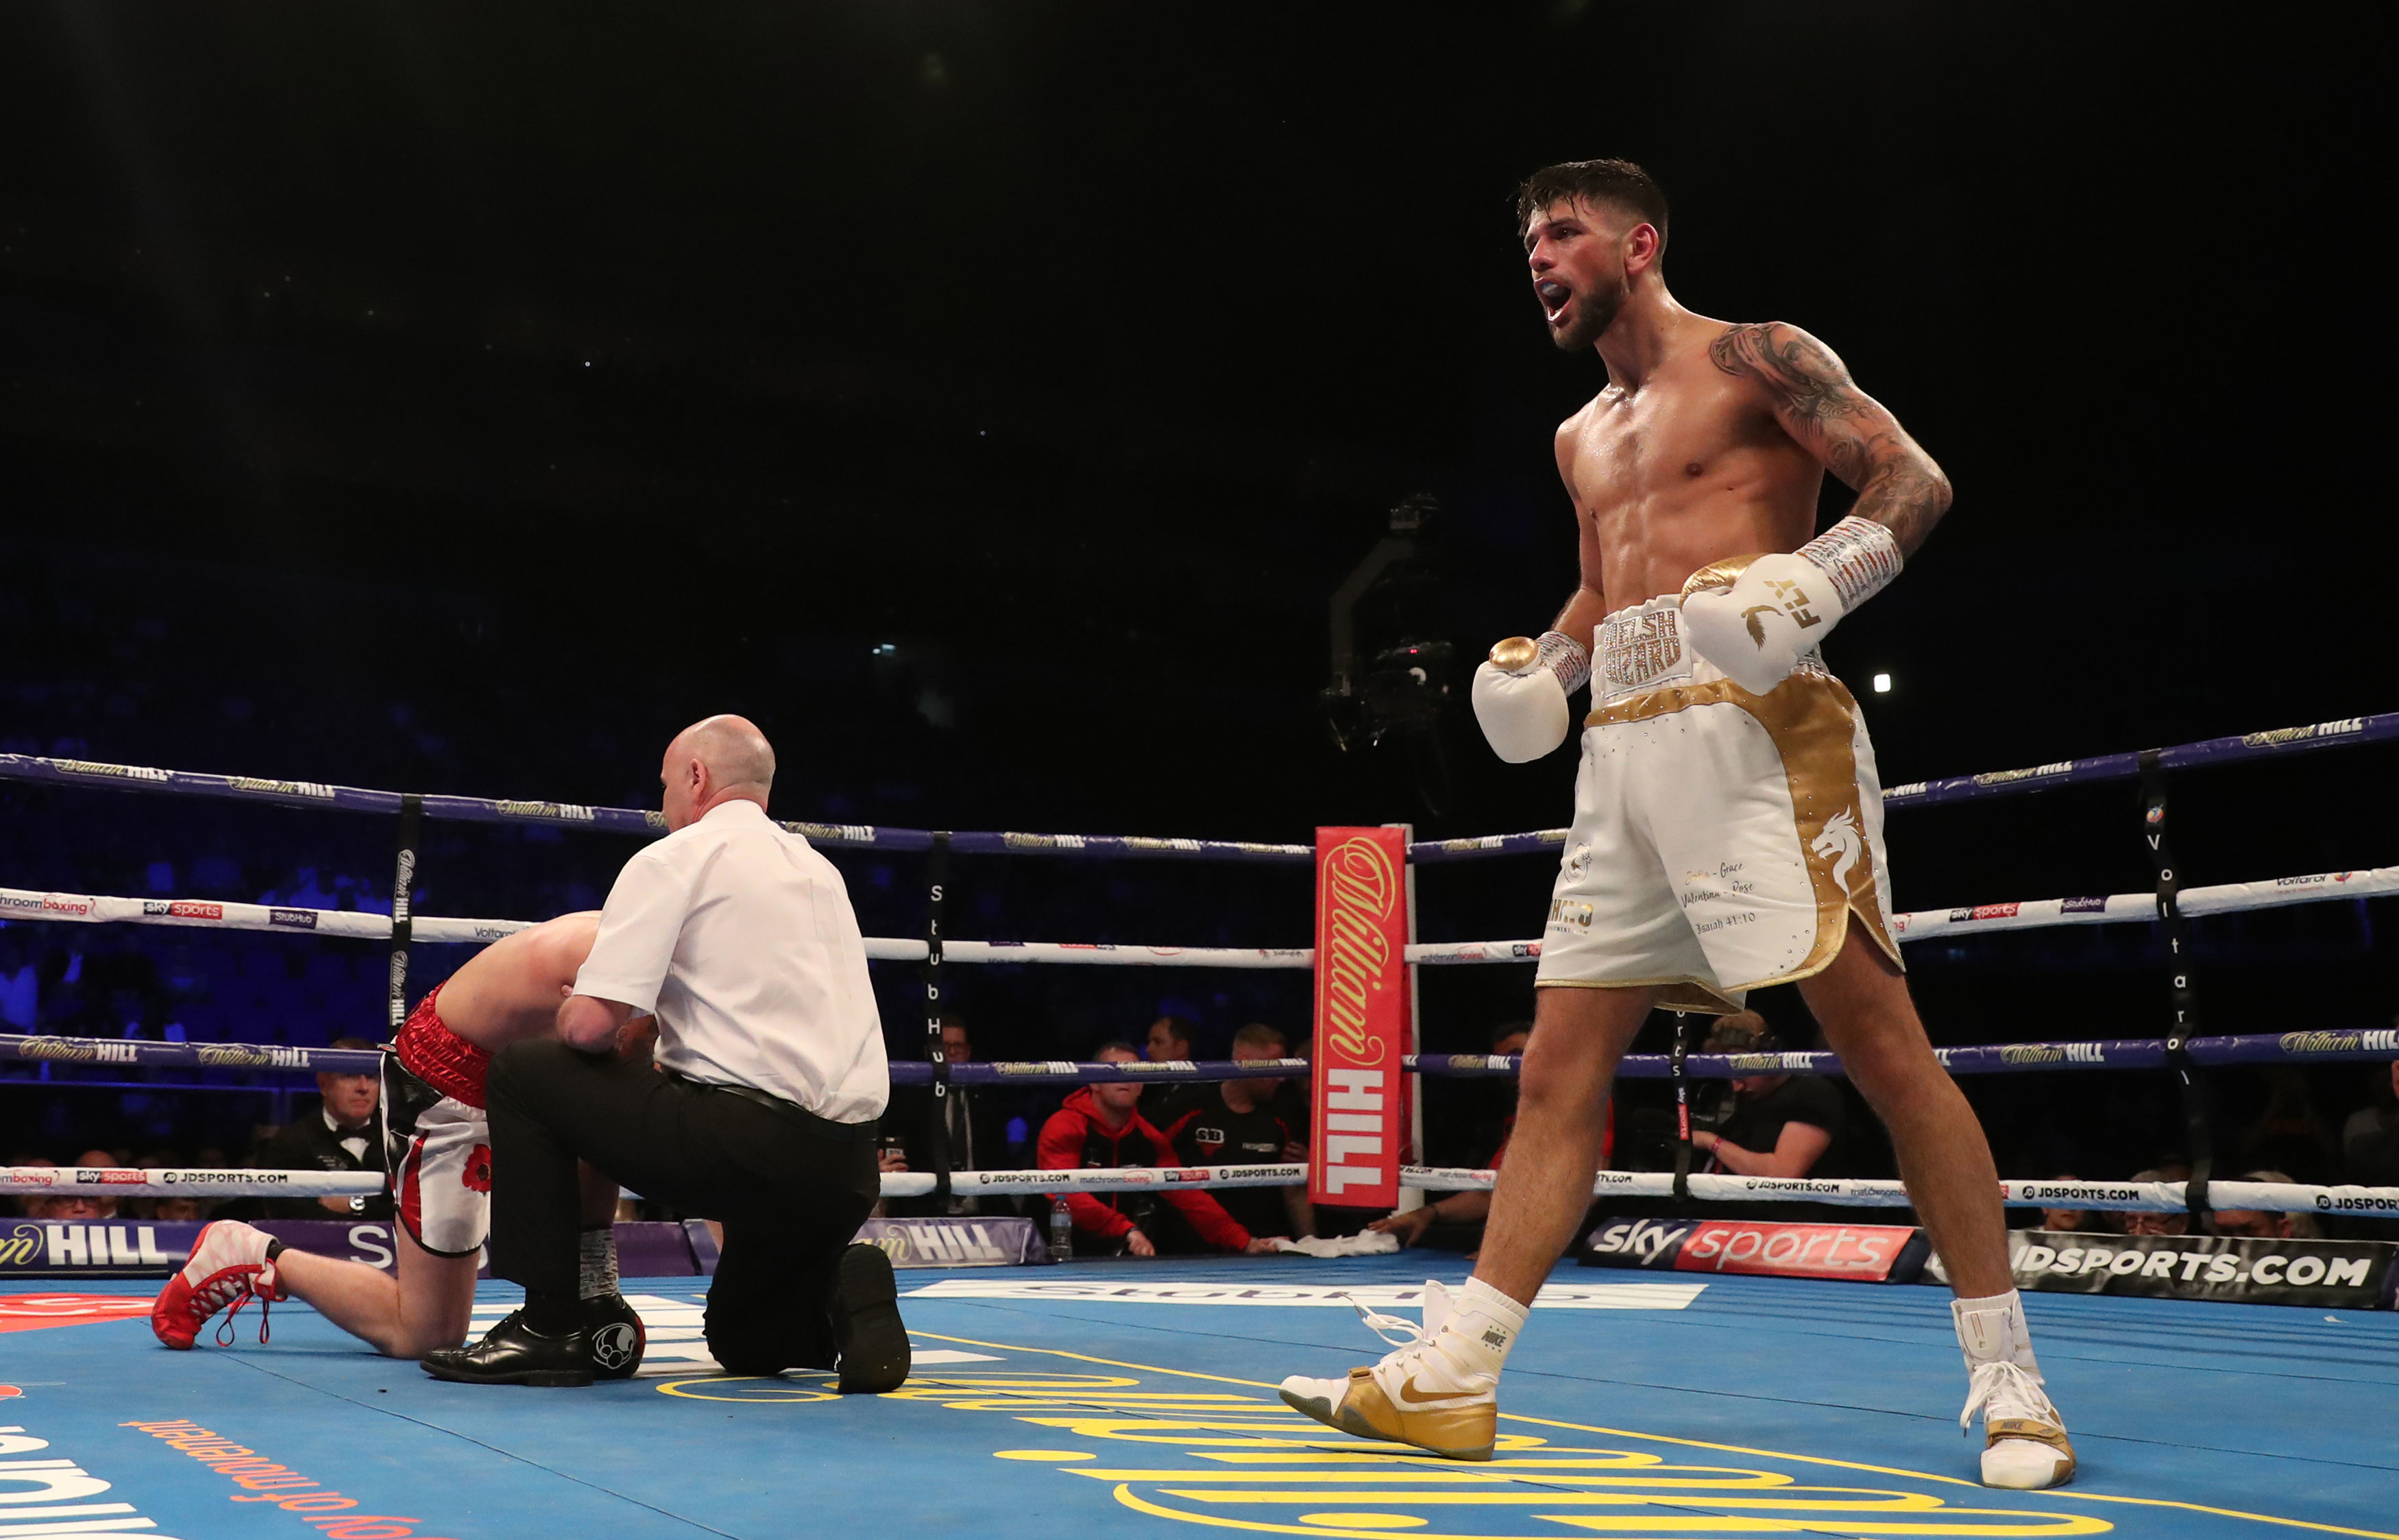 Joe Cordina shined in his six round demolition of Andy Townsend showcasing speed, power and ruthlessness